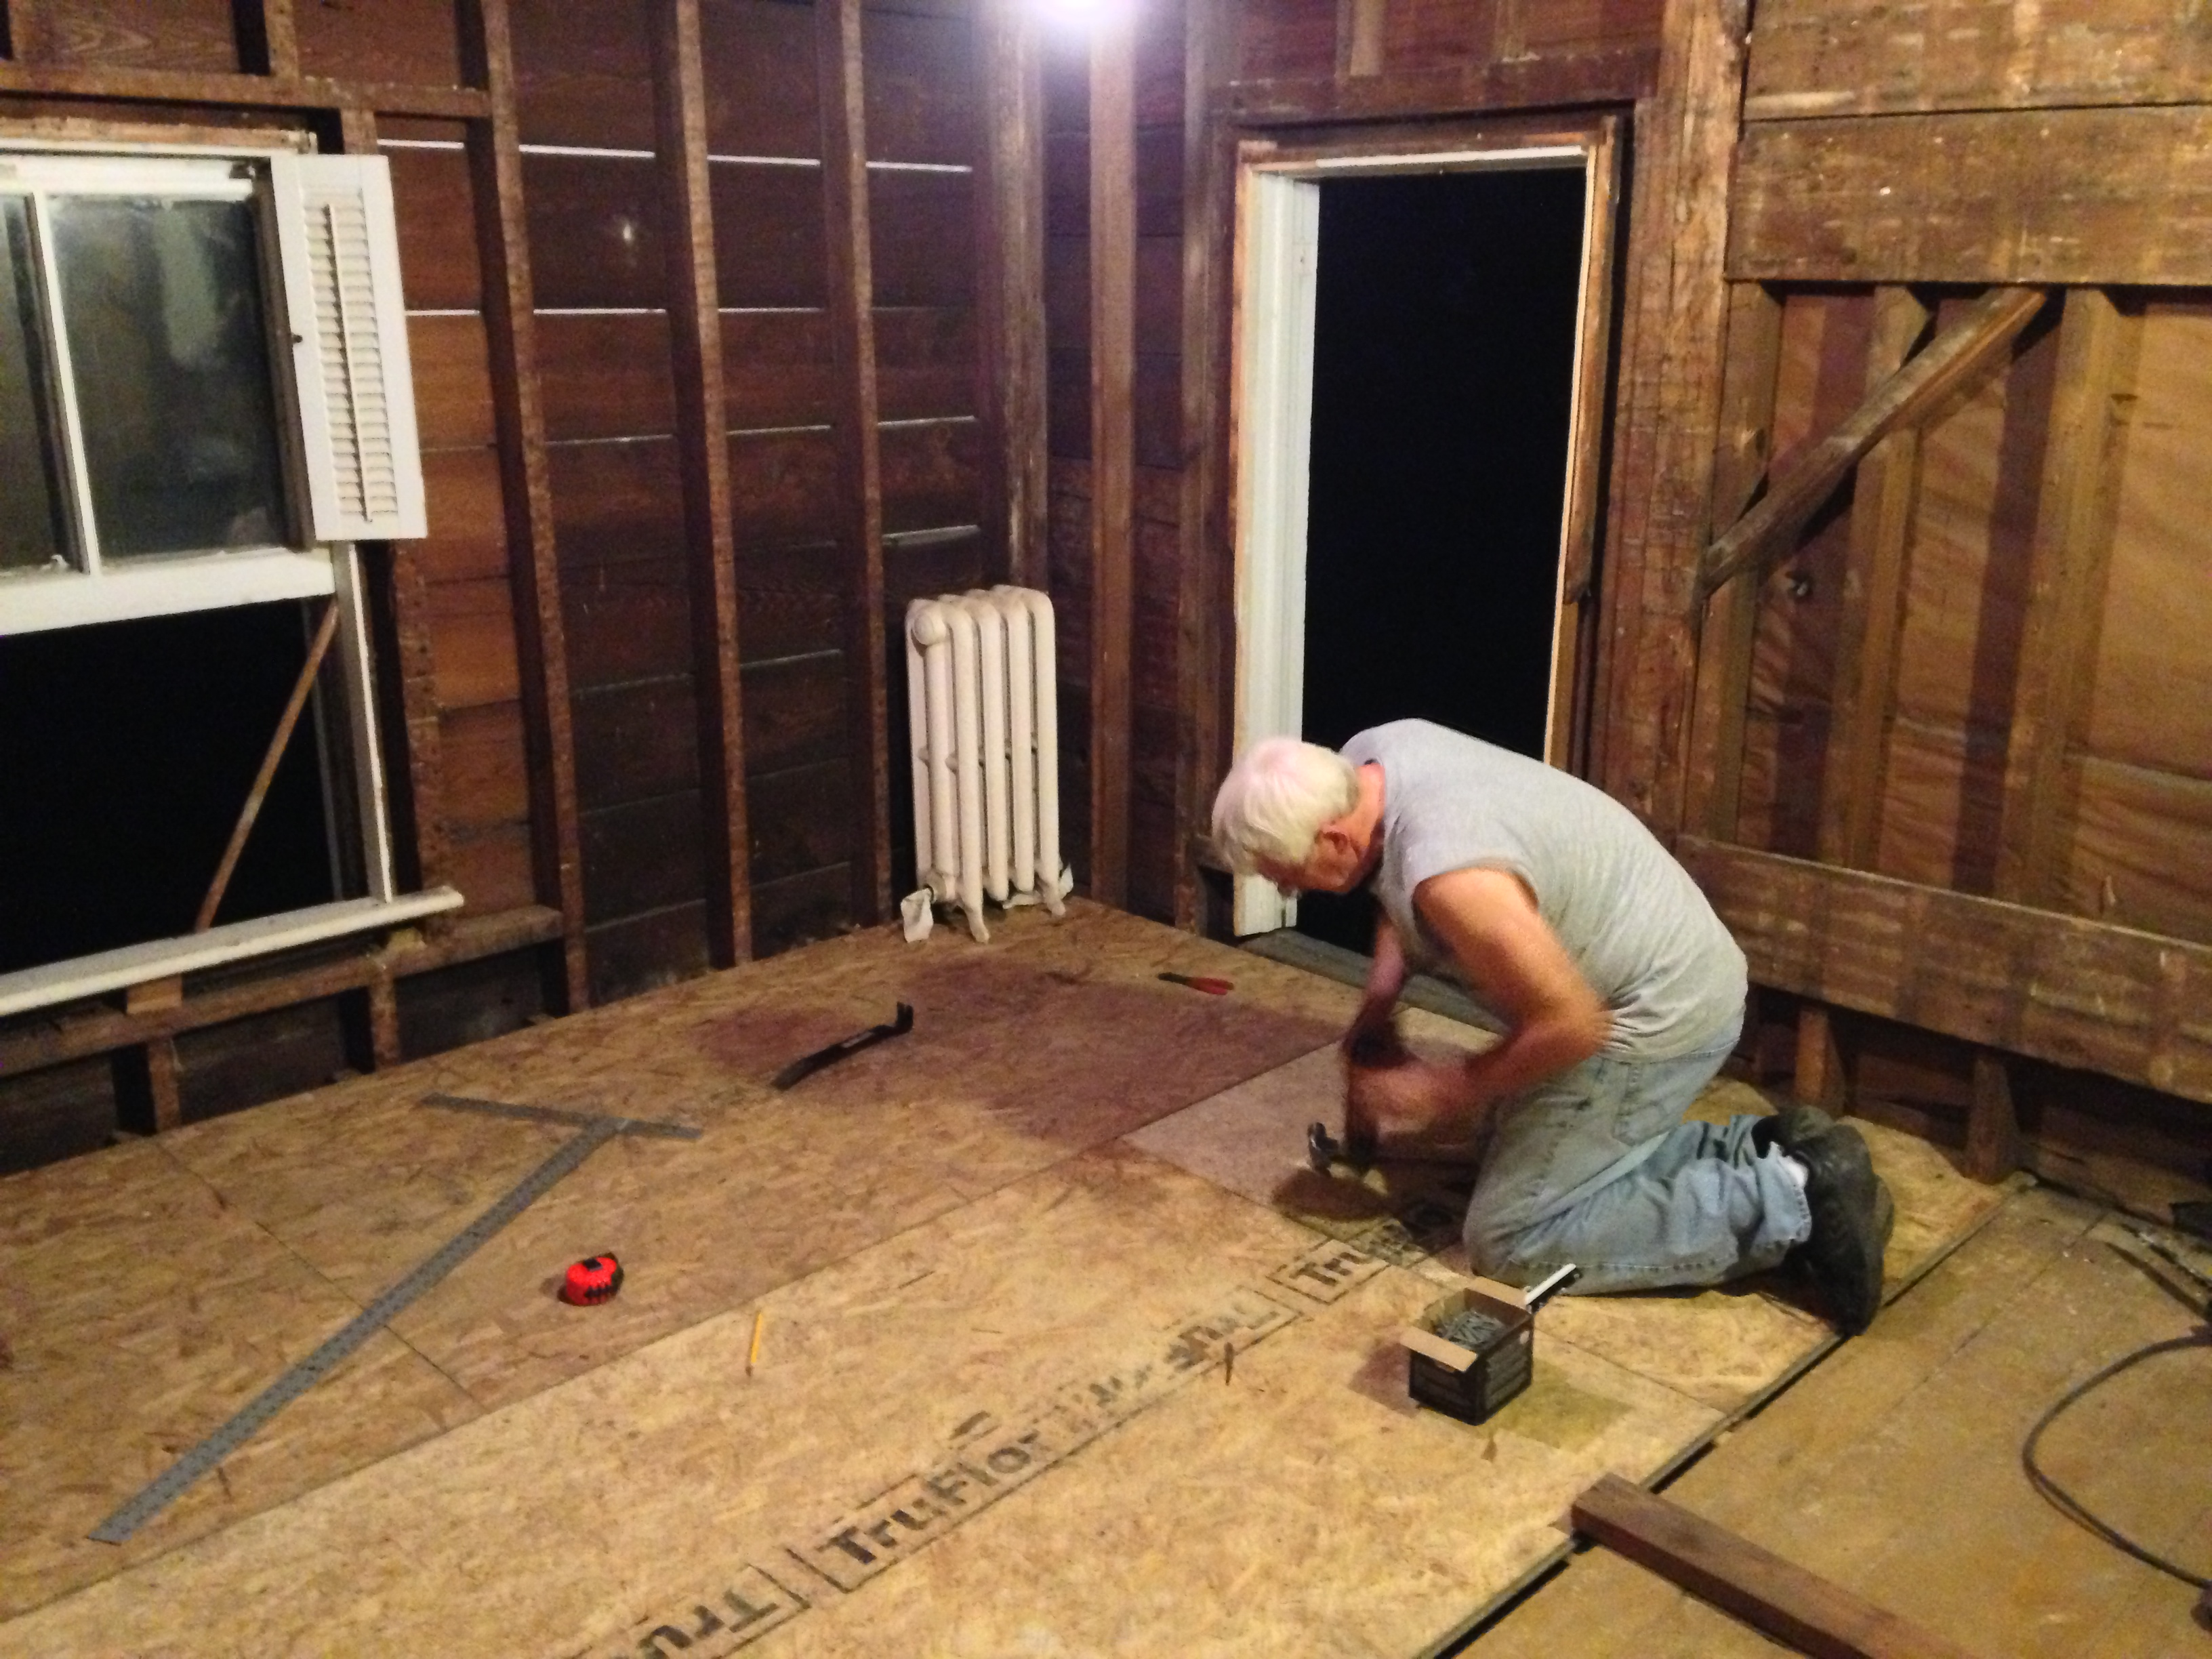 Redoing The Bathroom Floor And Finishing The Back Wall